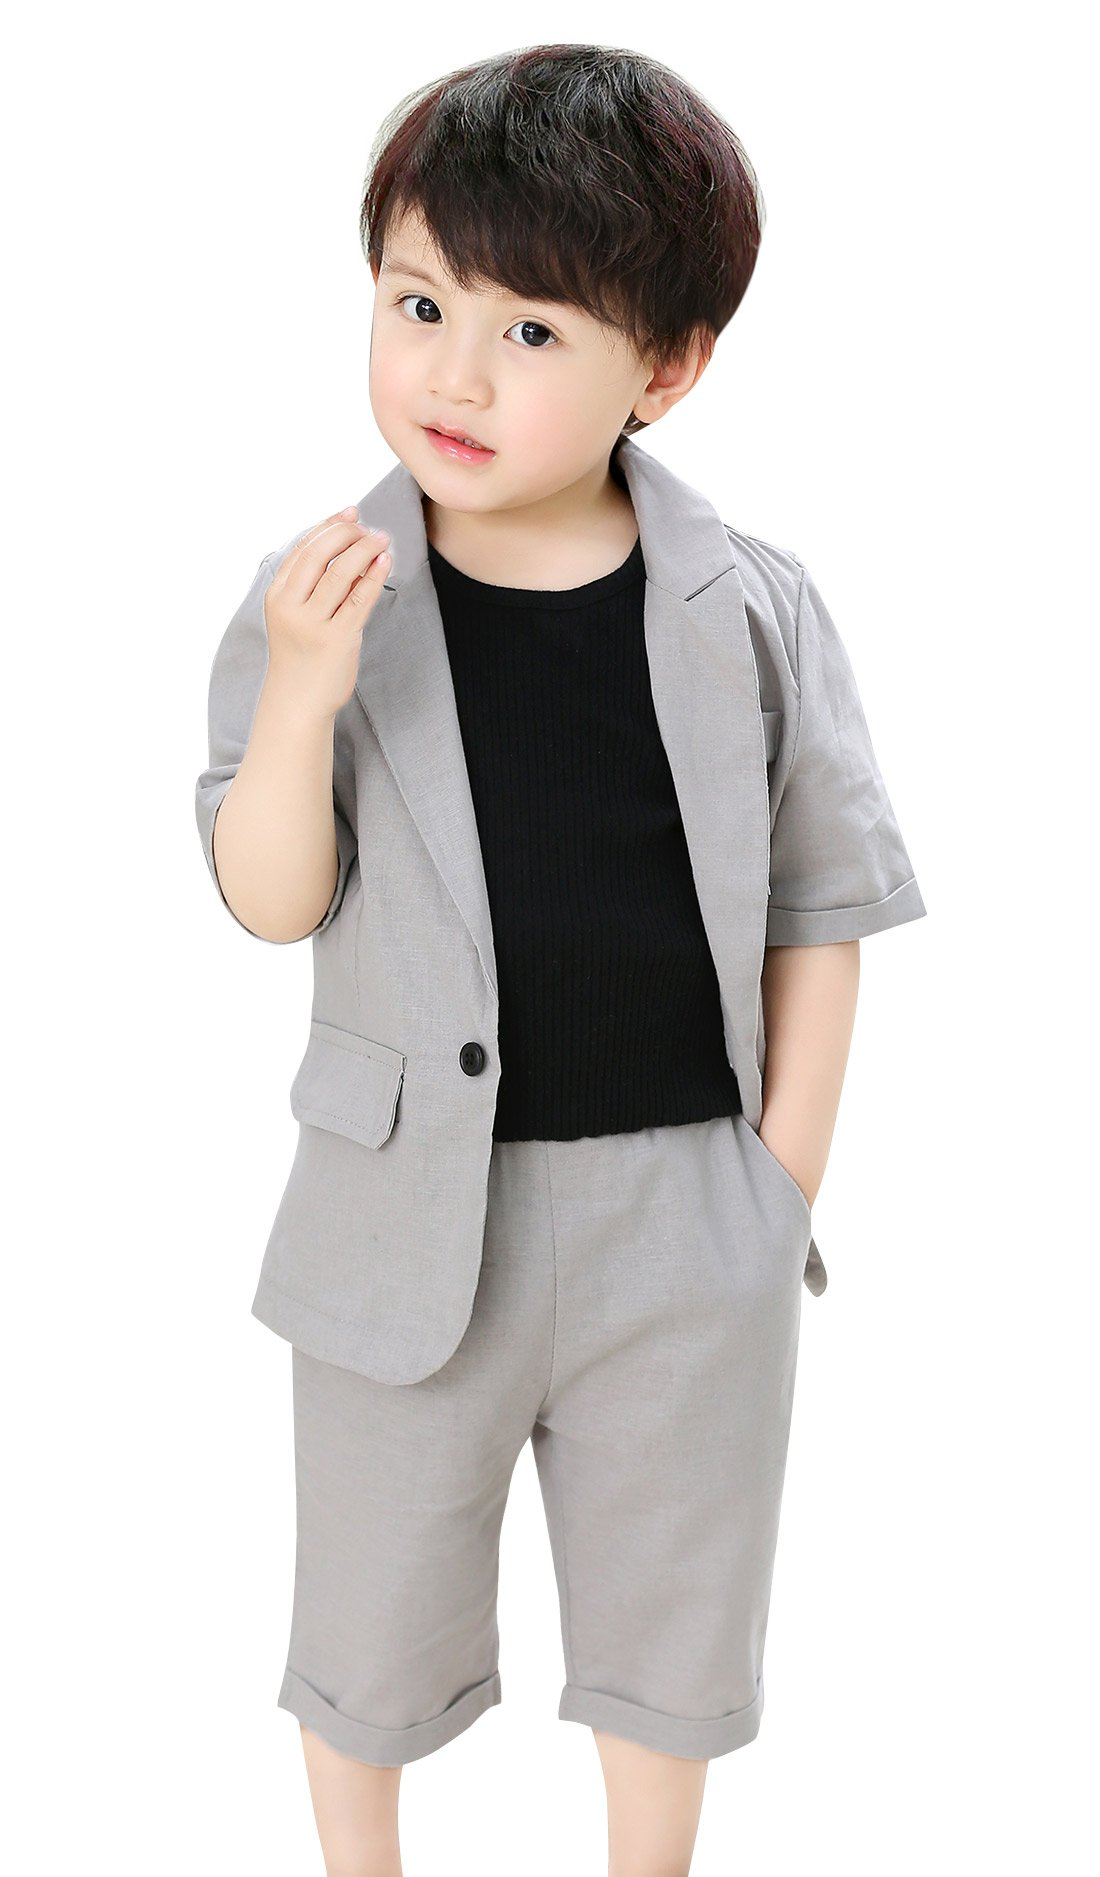 Little Boys Suits Set 2 Pieces Summer Suit Jacket Shorts Short Sleeve Wedding Outfit Slim Fit Grey 6